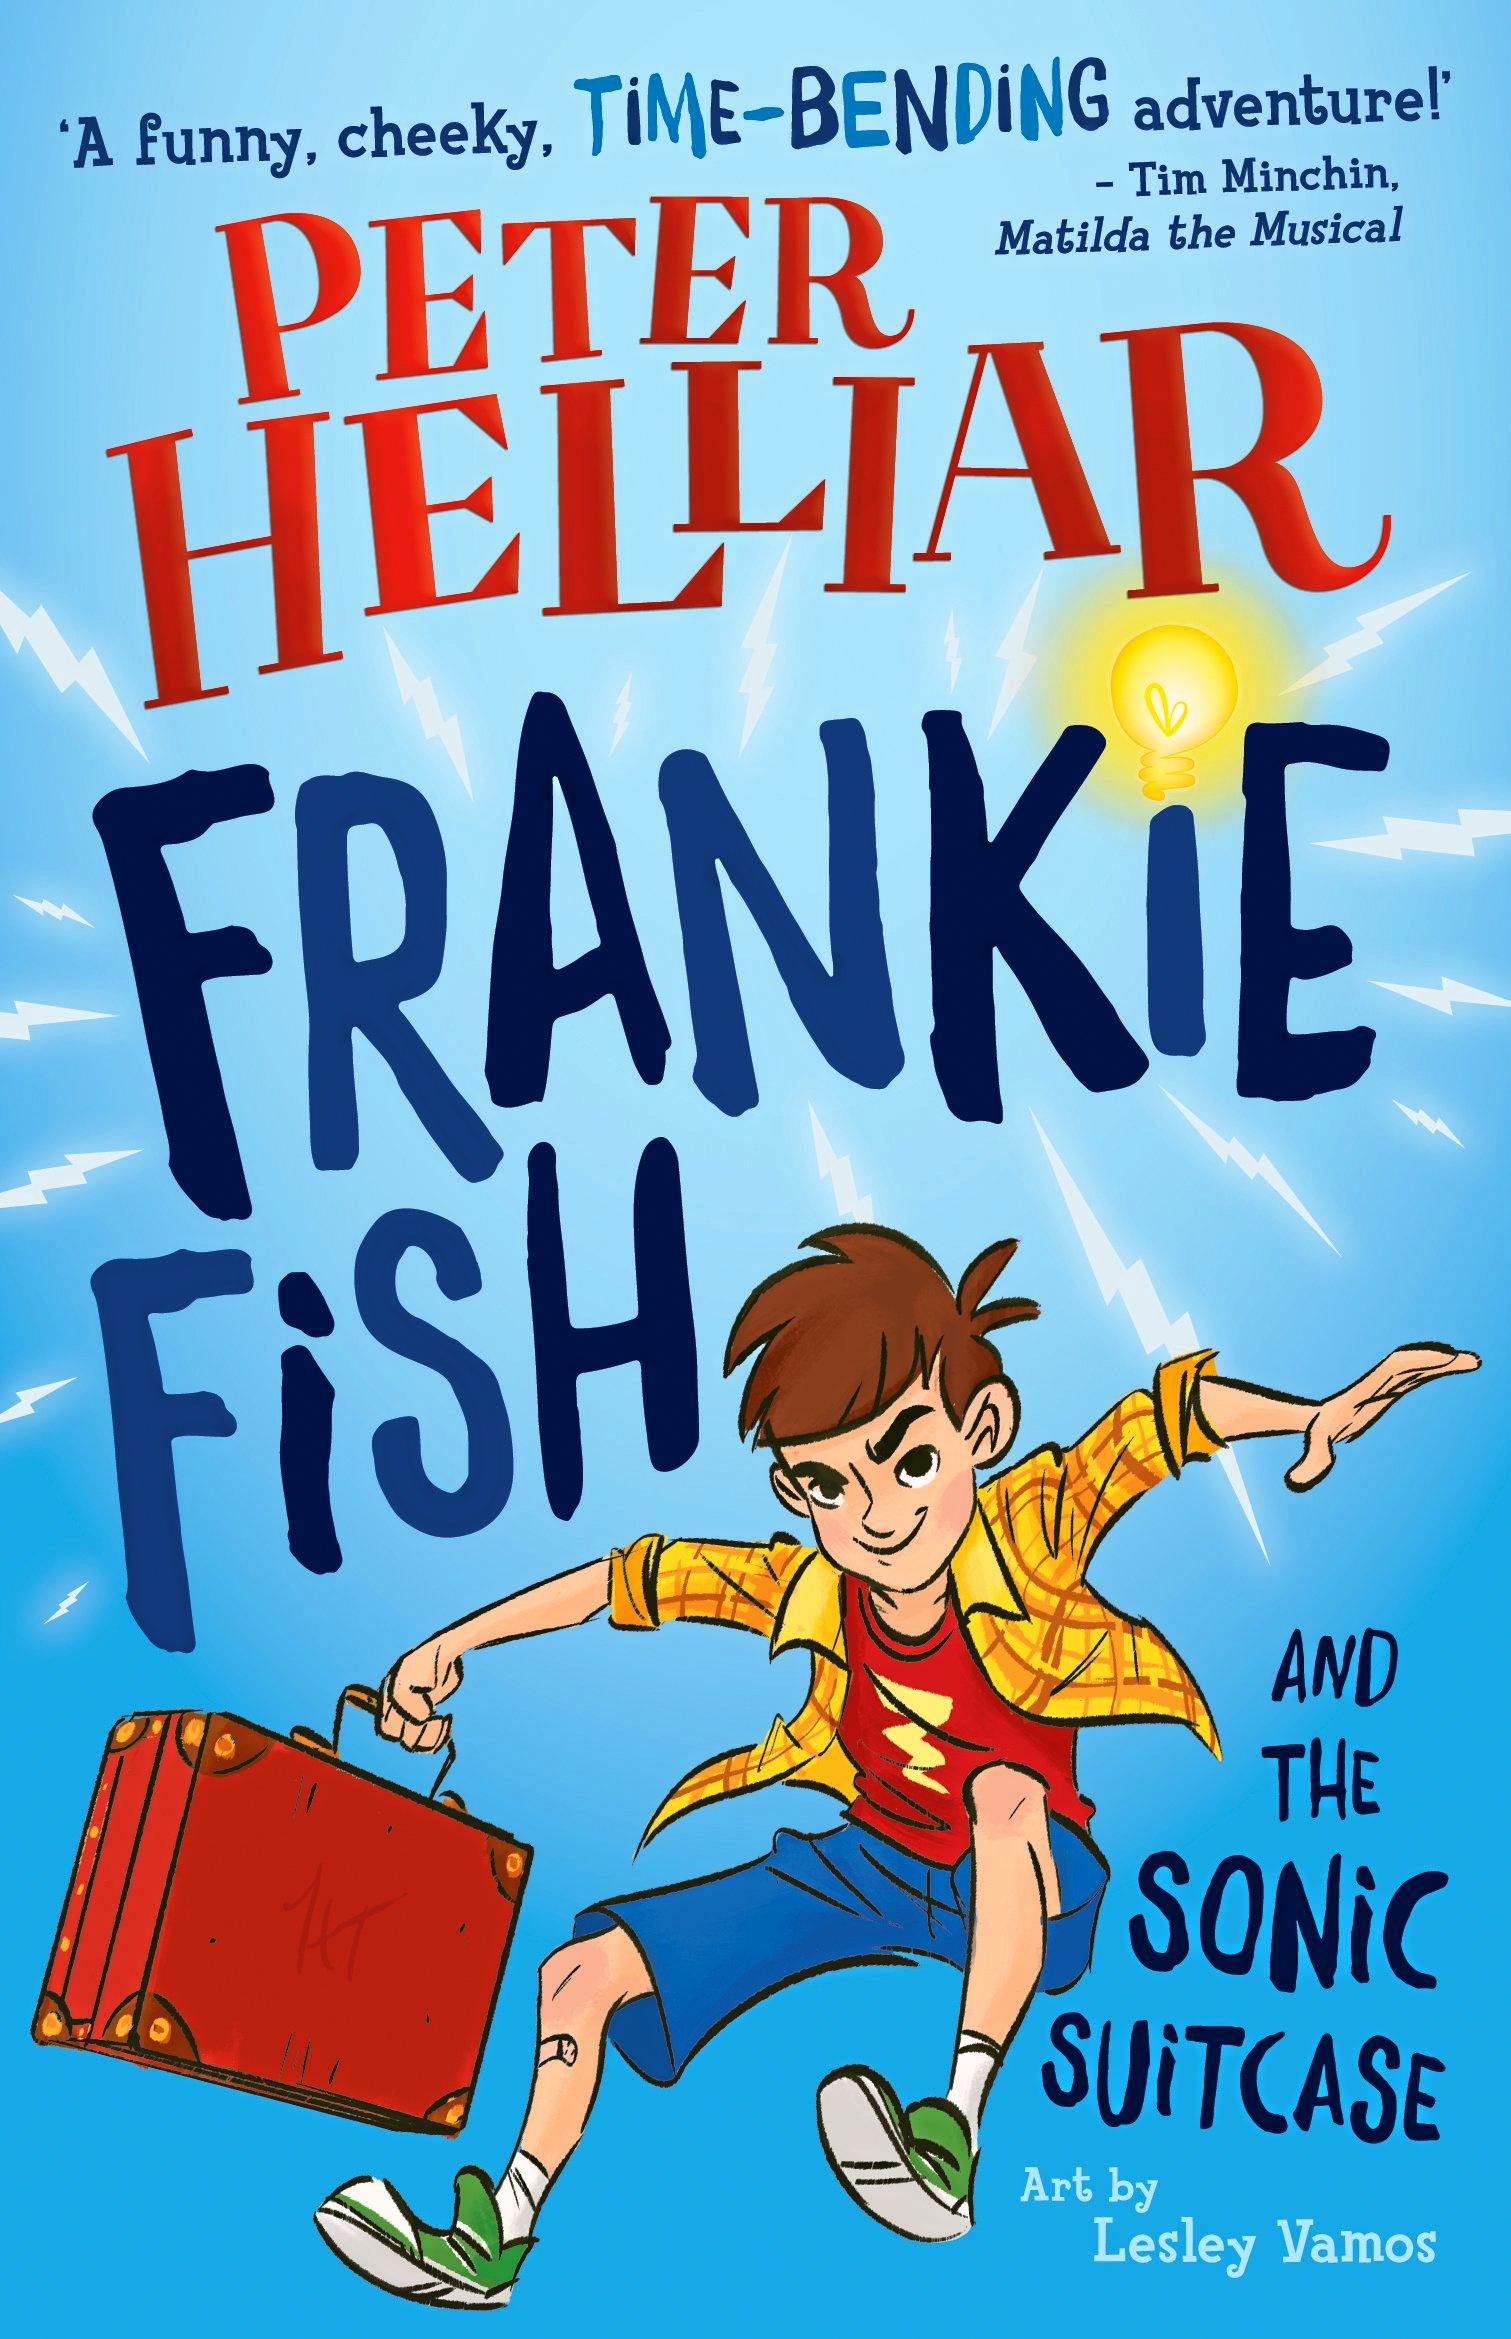 Peter Helliar is releasing a children's book, Frankie Fish and the Sonic Suitcase